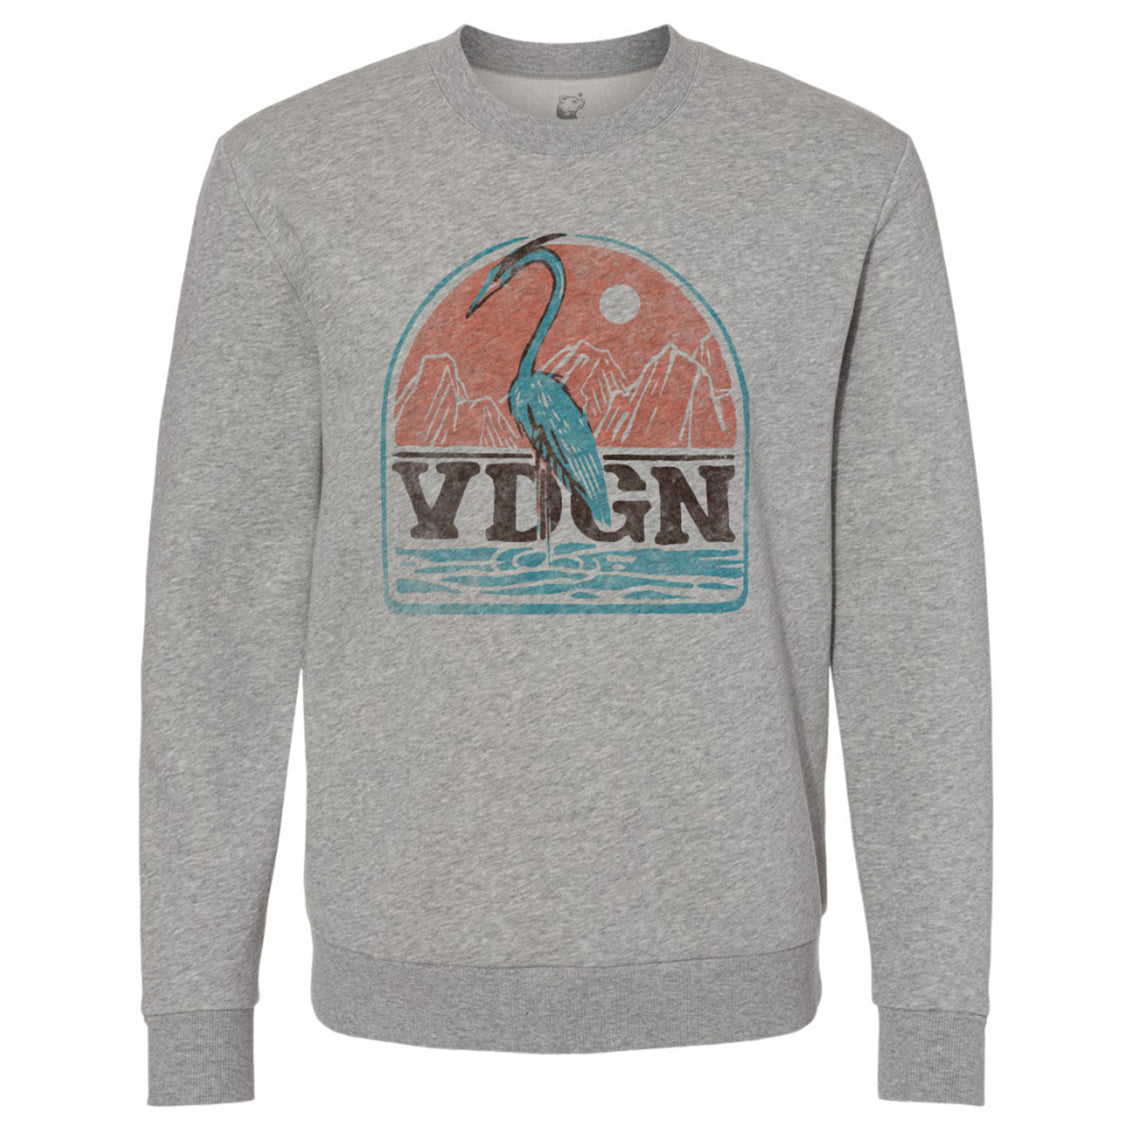 Lake Warden Sweatshirt